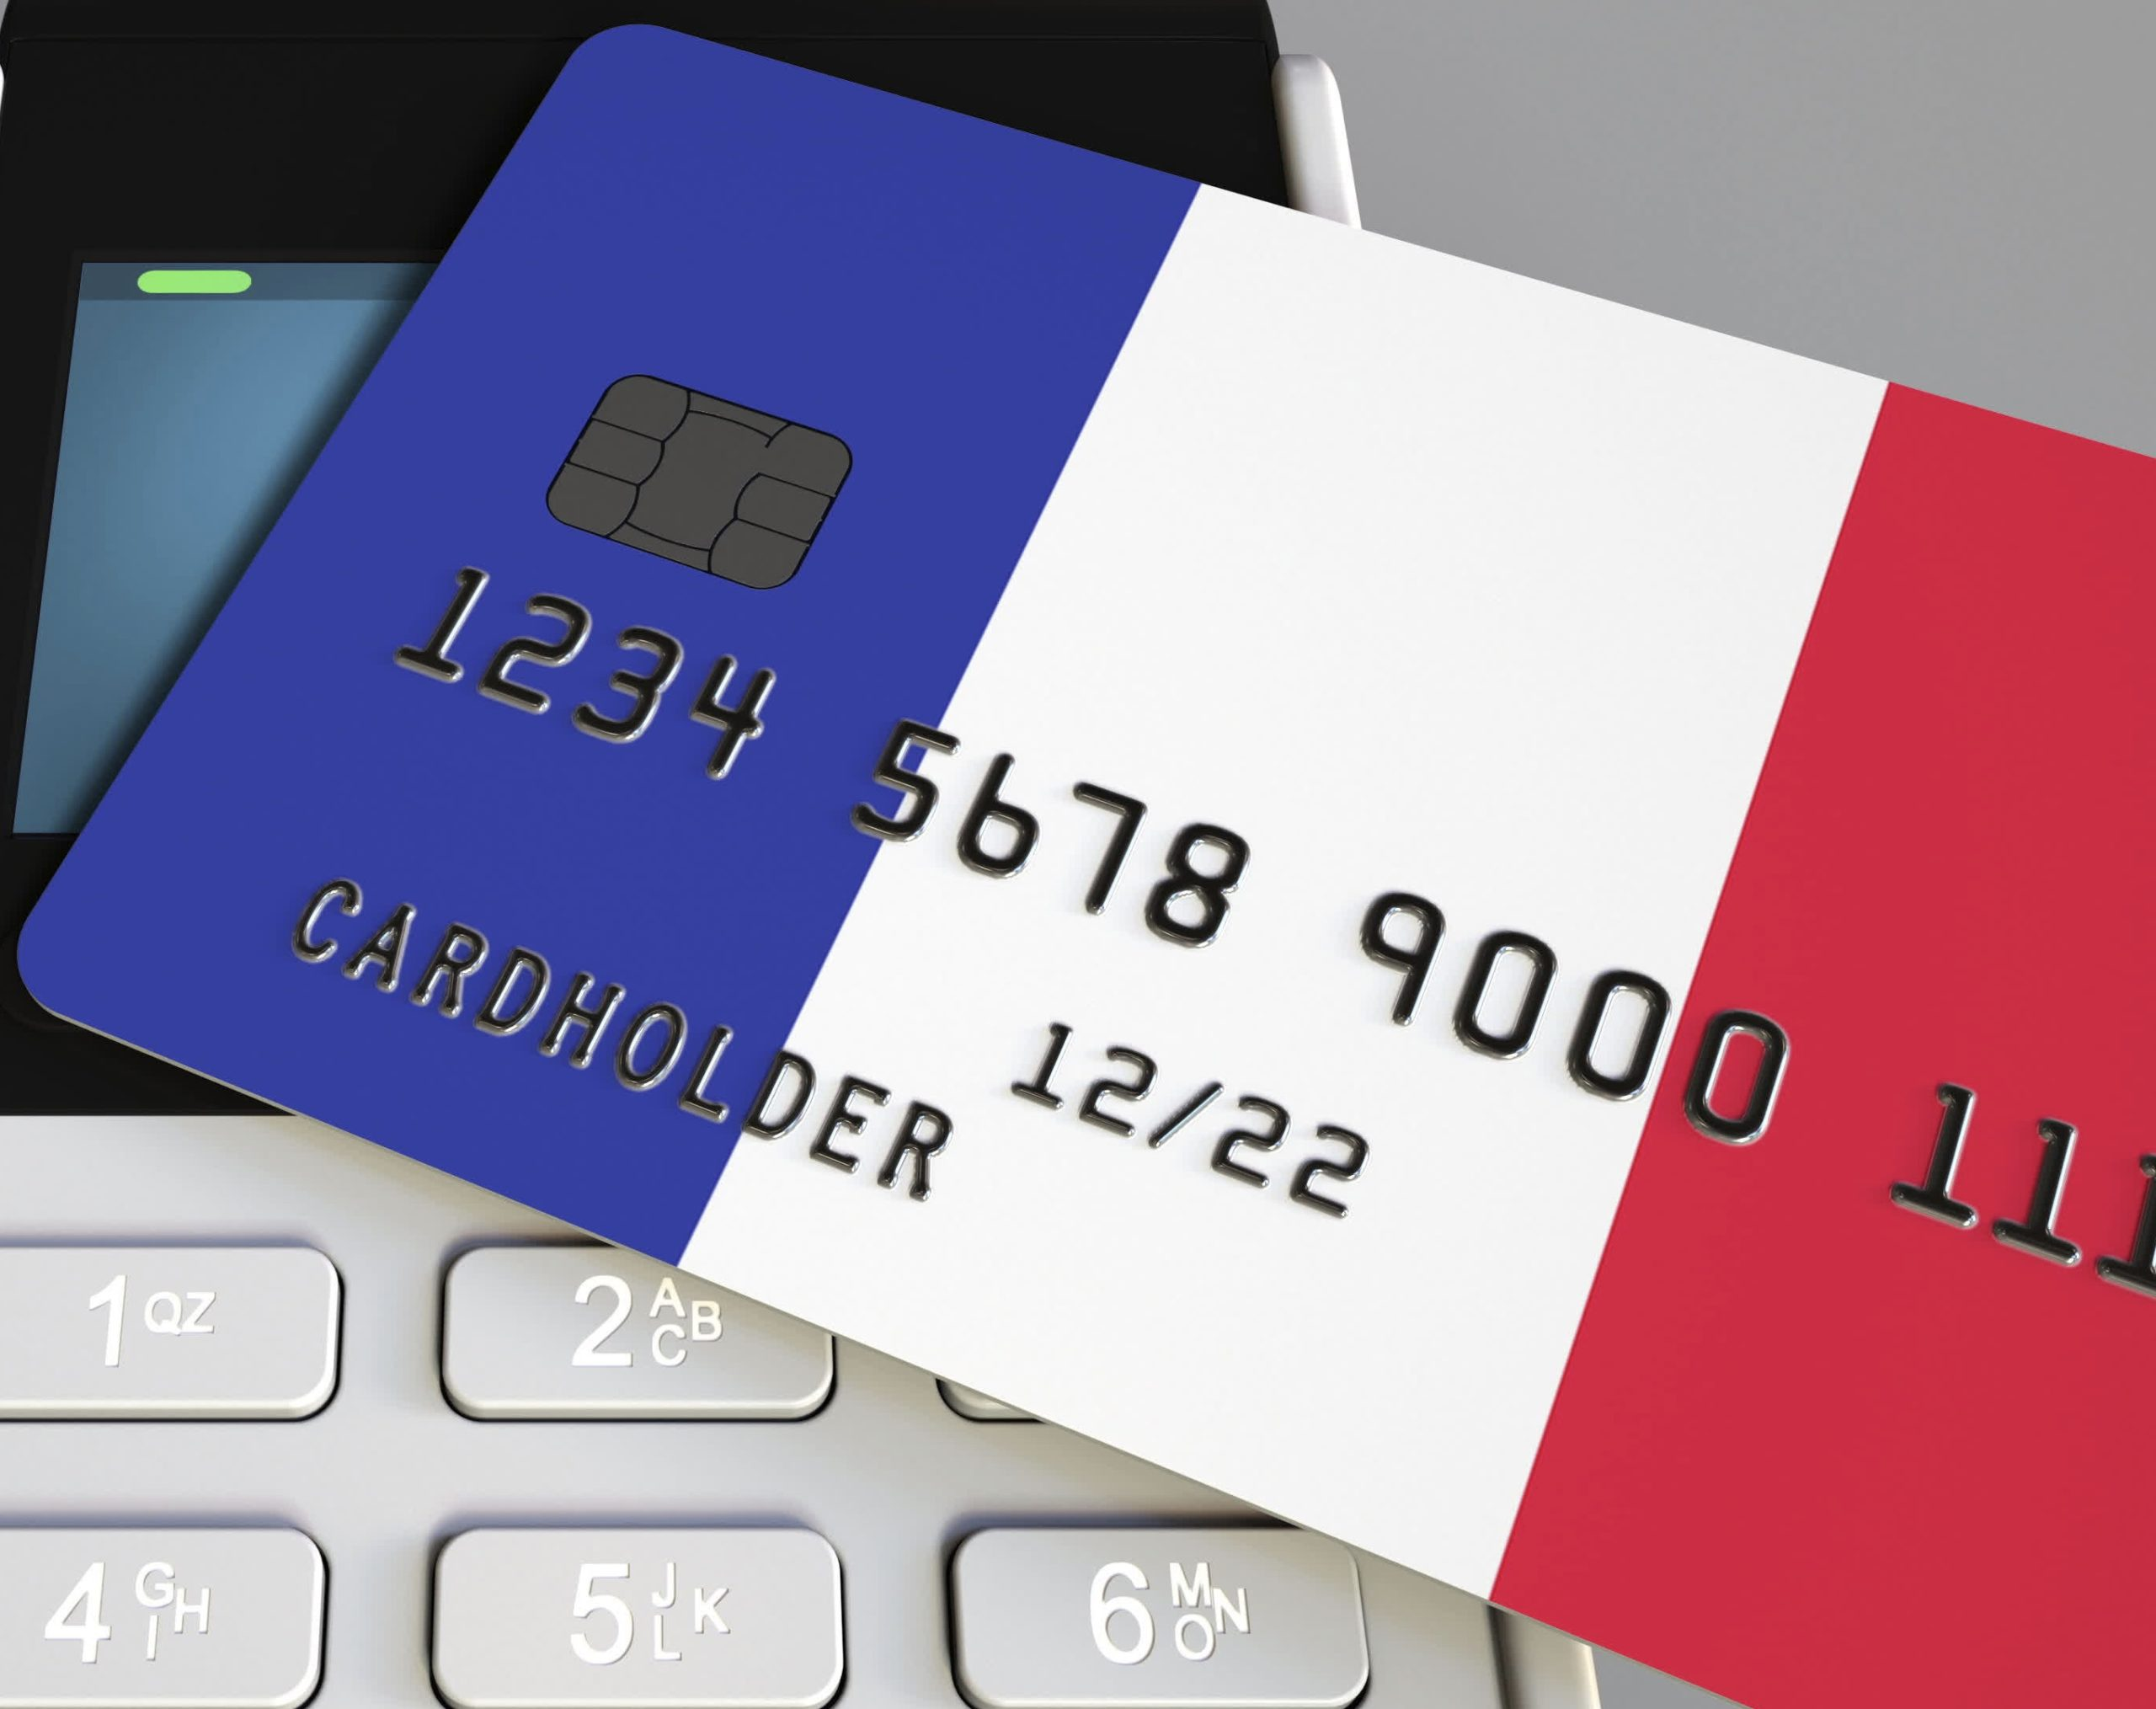 Opening a French bank account. Image shows Plastic bank card featuring french flag and POS terminal. National banking system conceptual 3D